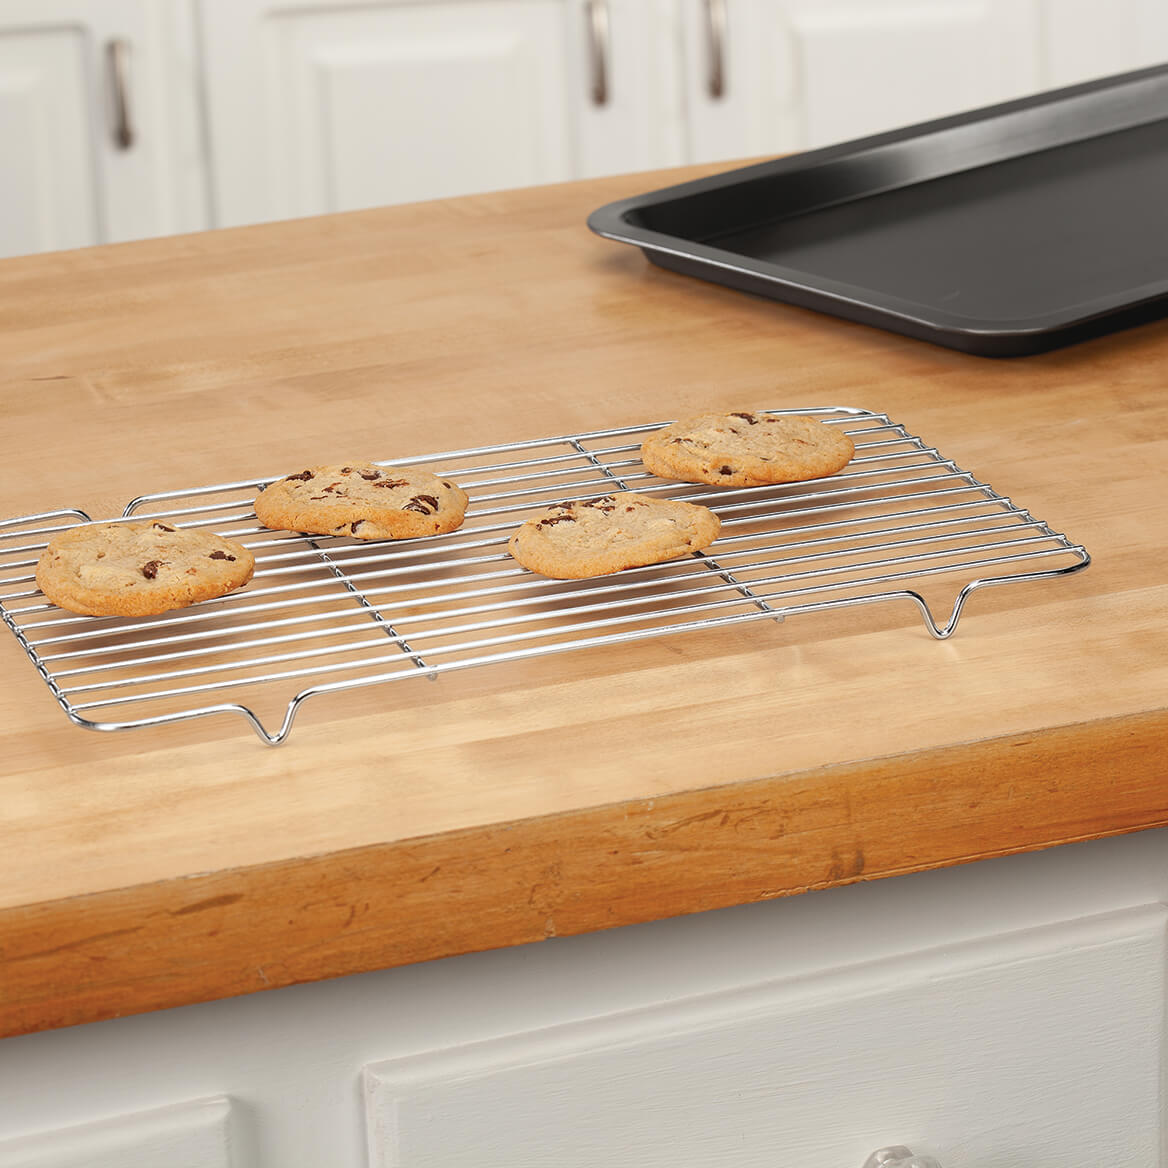 All in One Non-Stick Baking Sheet and Stainless Steel Rack-370370